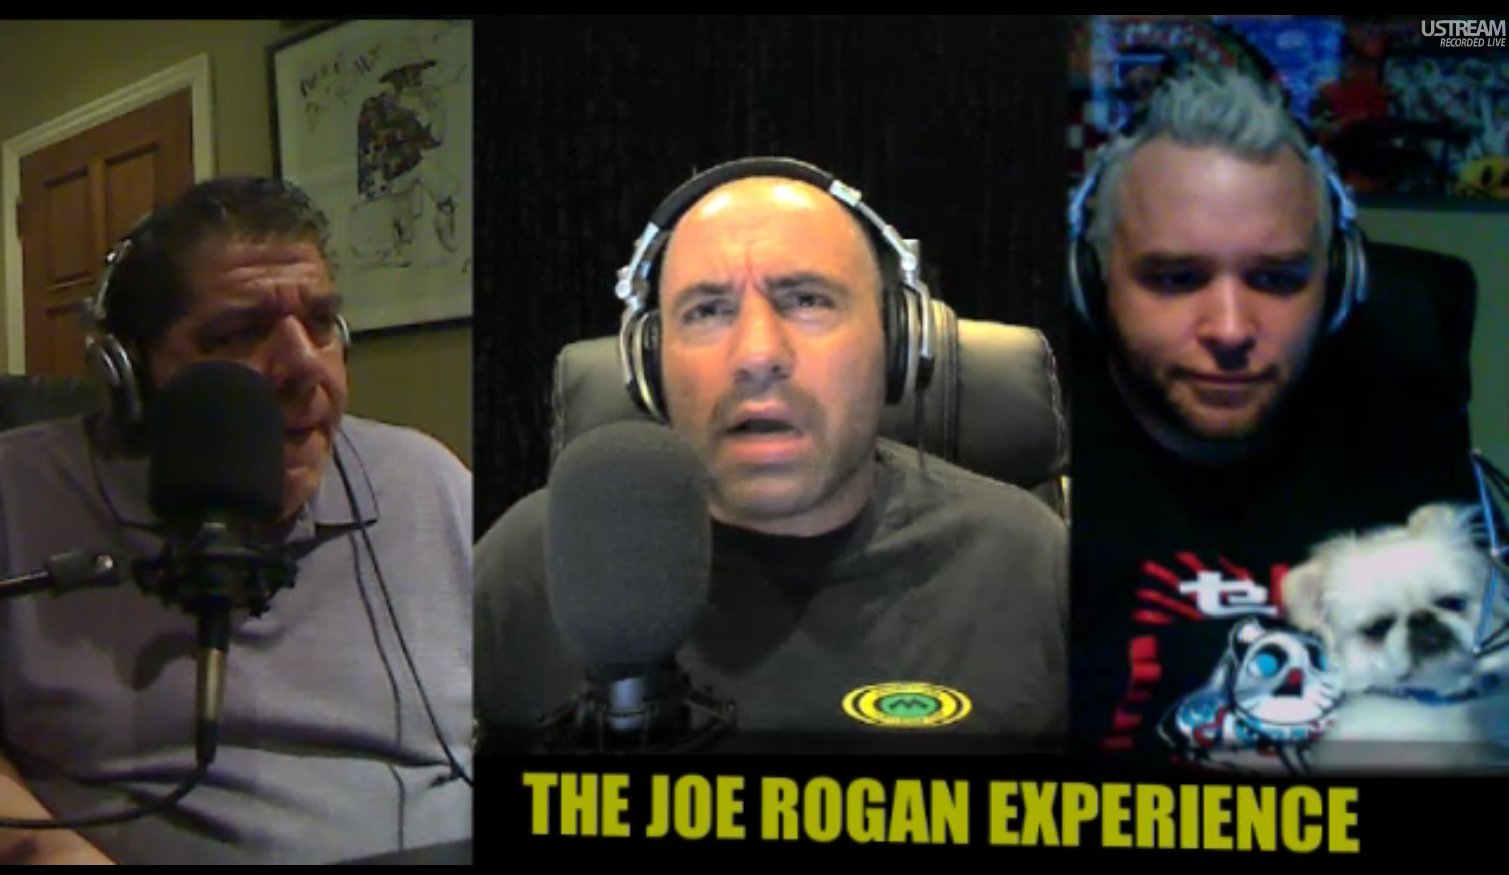 The Joe Rogan Experience #250 - Joey Diaz, Brian Redban